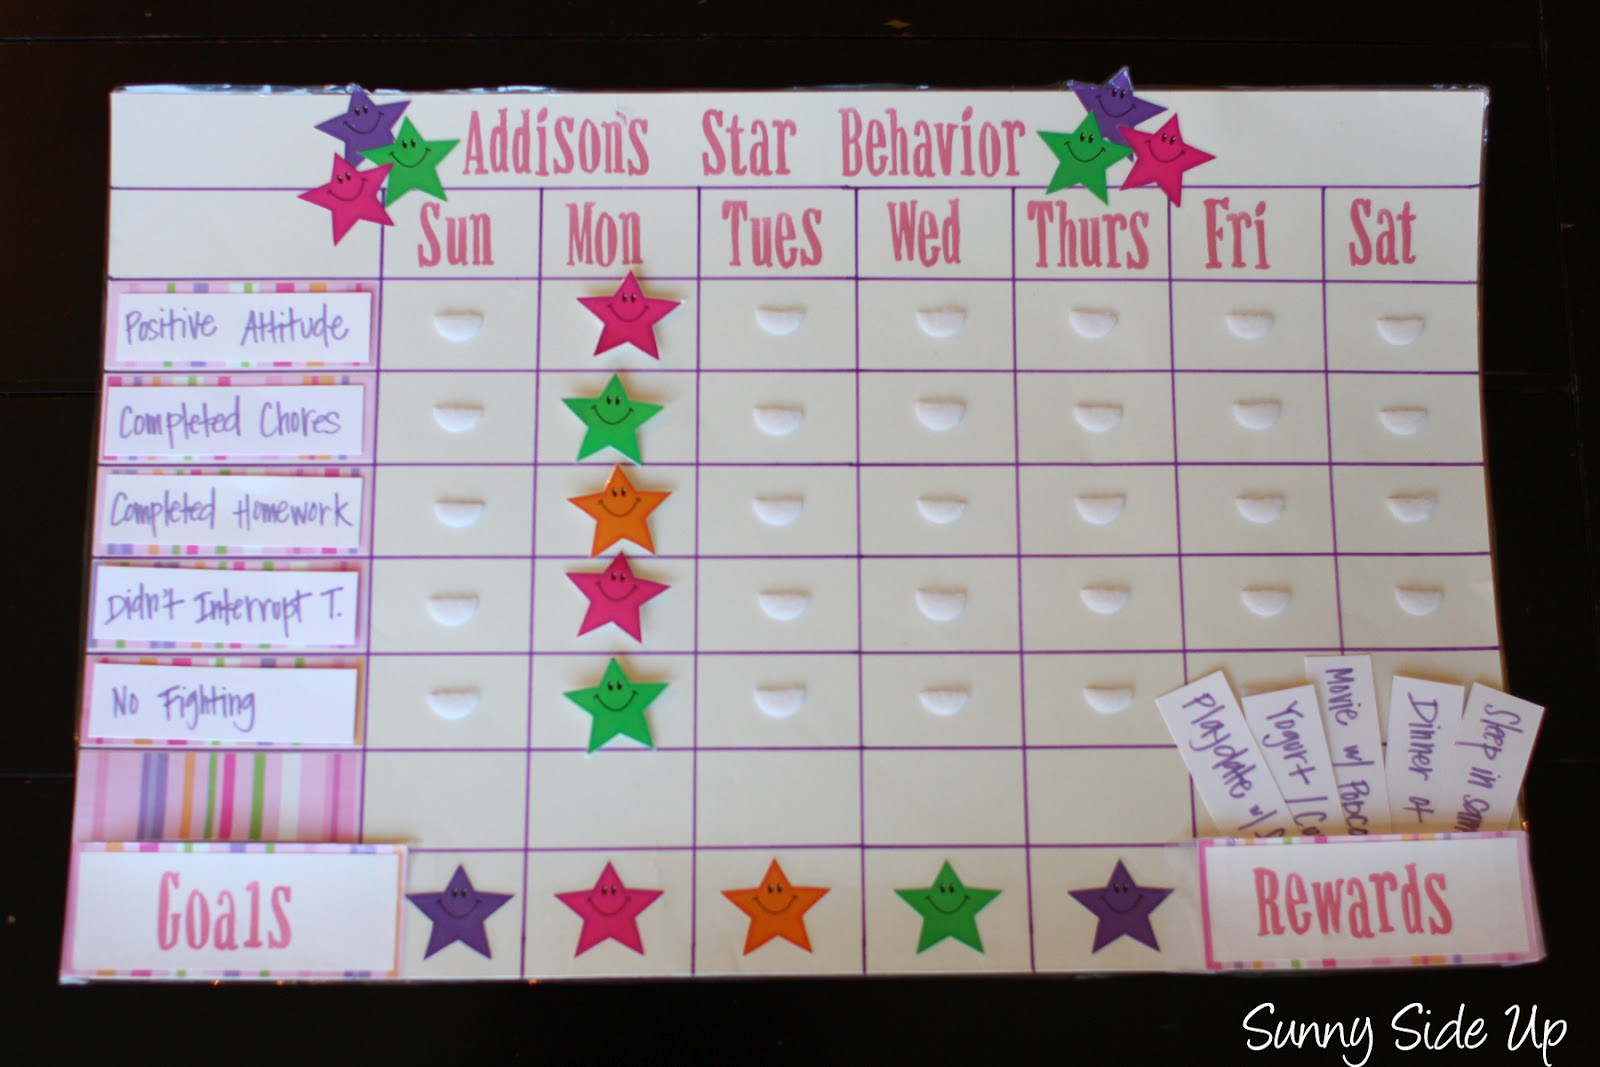 Star Behavior Chart http://www.thesunnysideupblog.com/2012/06/star-charts-re-born.html